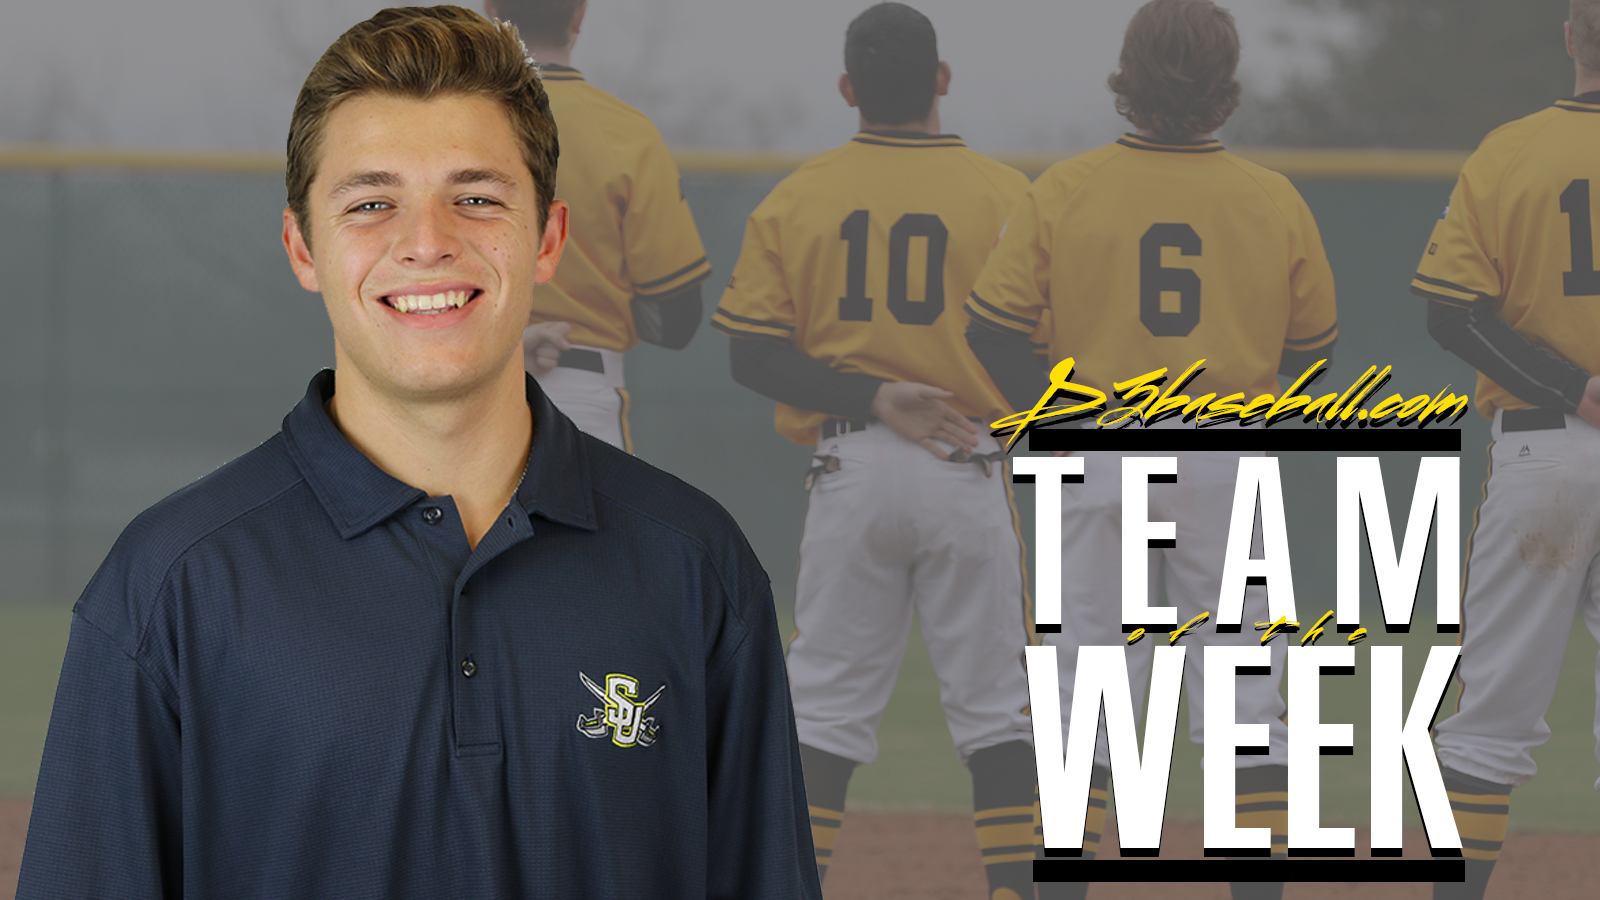 Sparks Named to D3baseball.com Team of the Week